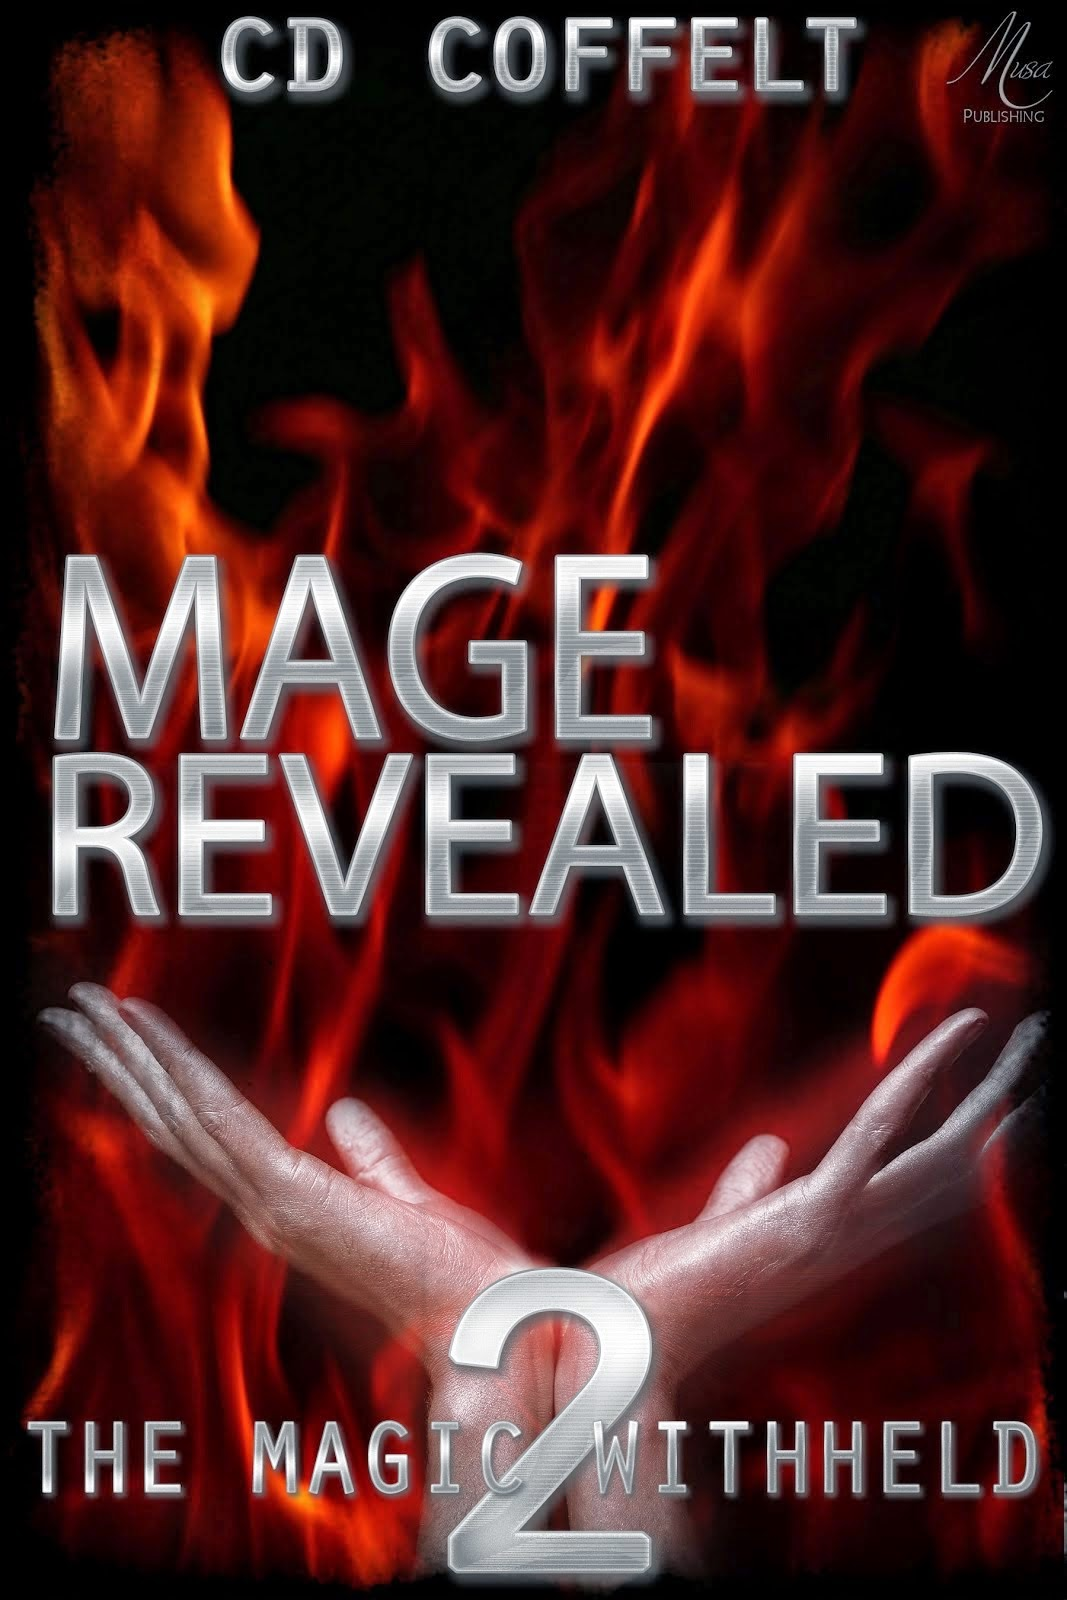 http://www.amazon.com/Mage-Revealed-Magic-Withheld-Book-ebook/dp/B00OV8EPRG/ref=sr_1_1?ie=UTF8&qid=1414182064&sr=8-1&keywords=mage+revealed